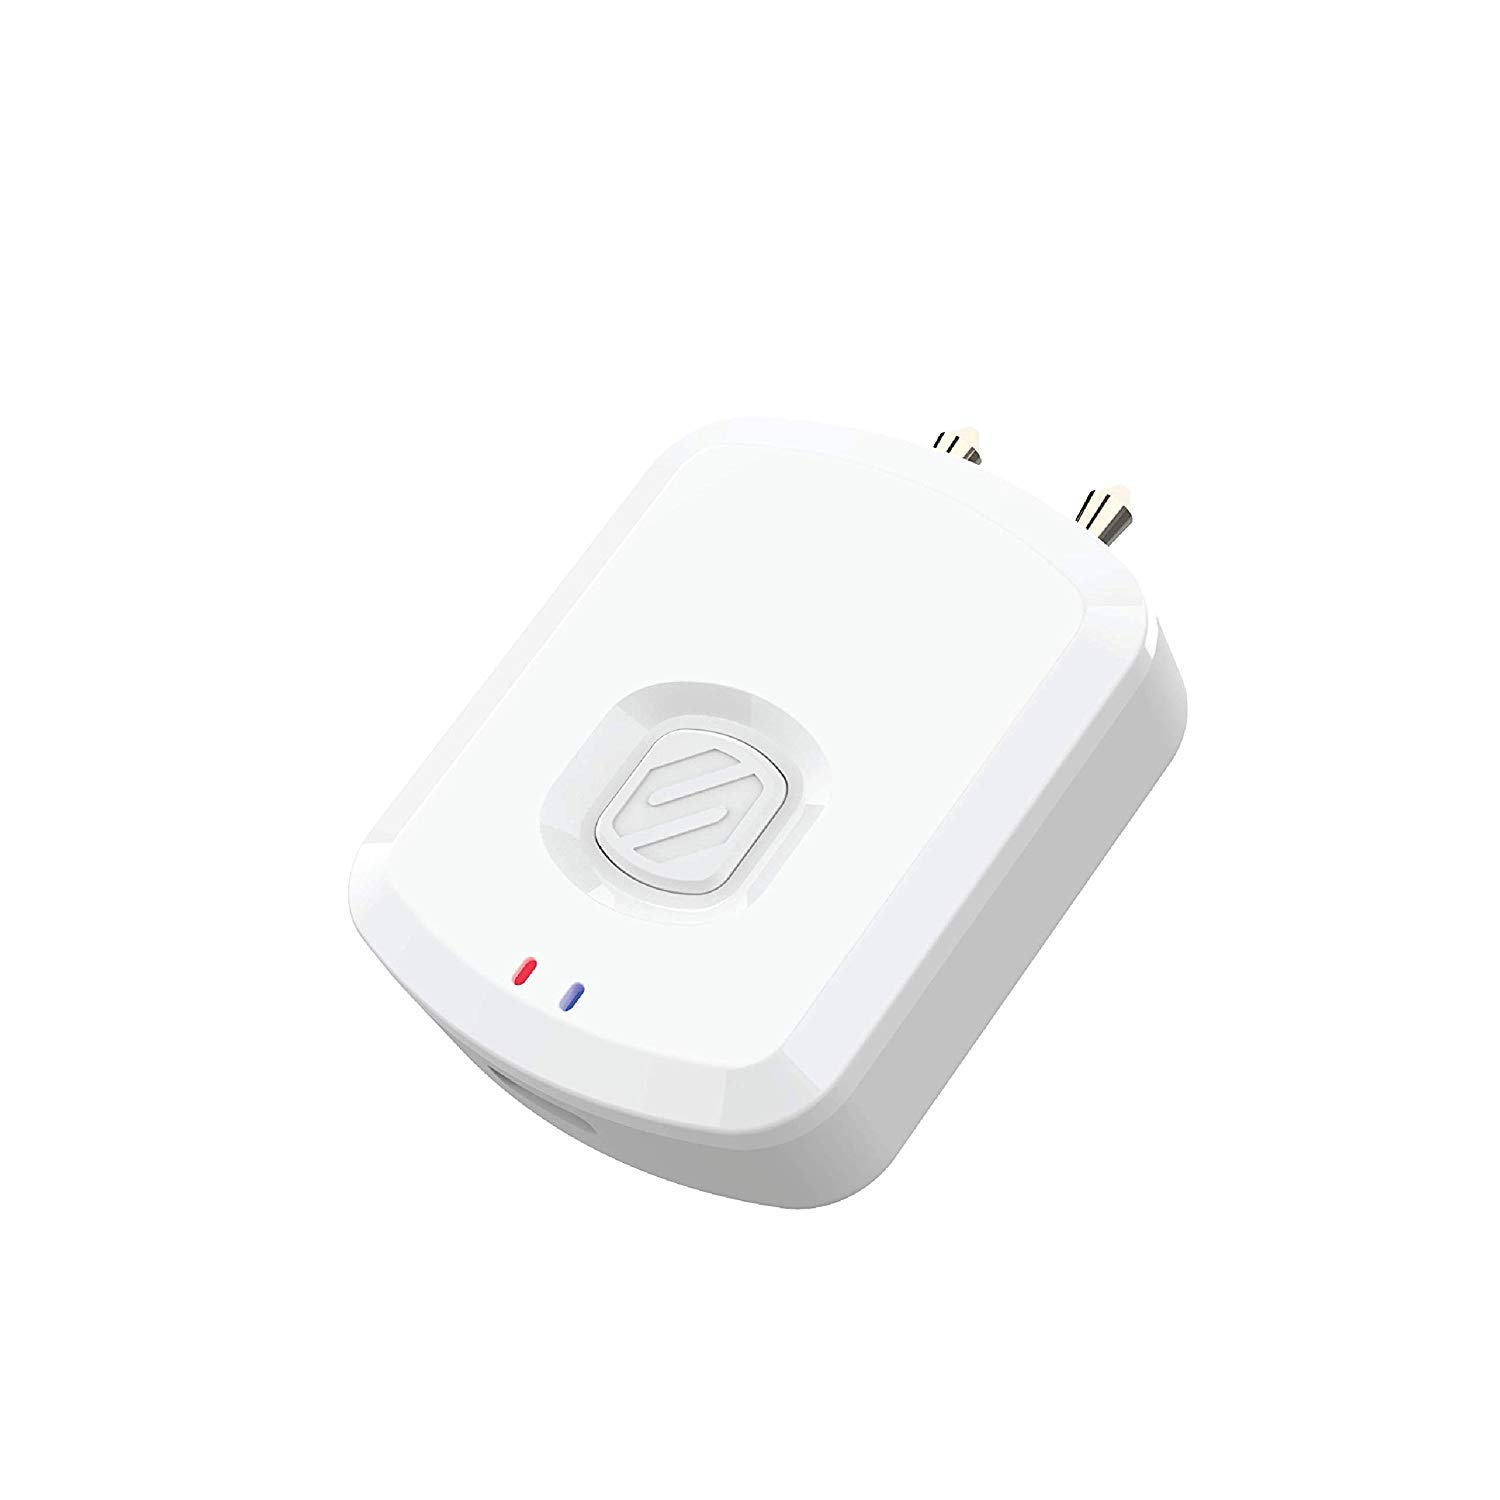 SCOSCHE BTTWT-SP FlyTunes Universal Portable Bluetooth 4.1 Wireless Audio Transmitter for Use with AirPods, Earbuds/Headphones, TV's and More - White